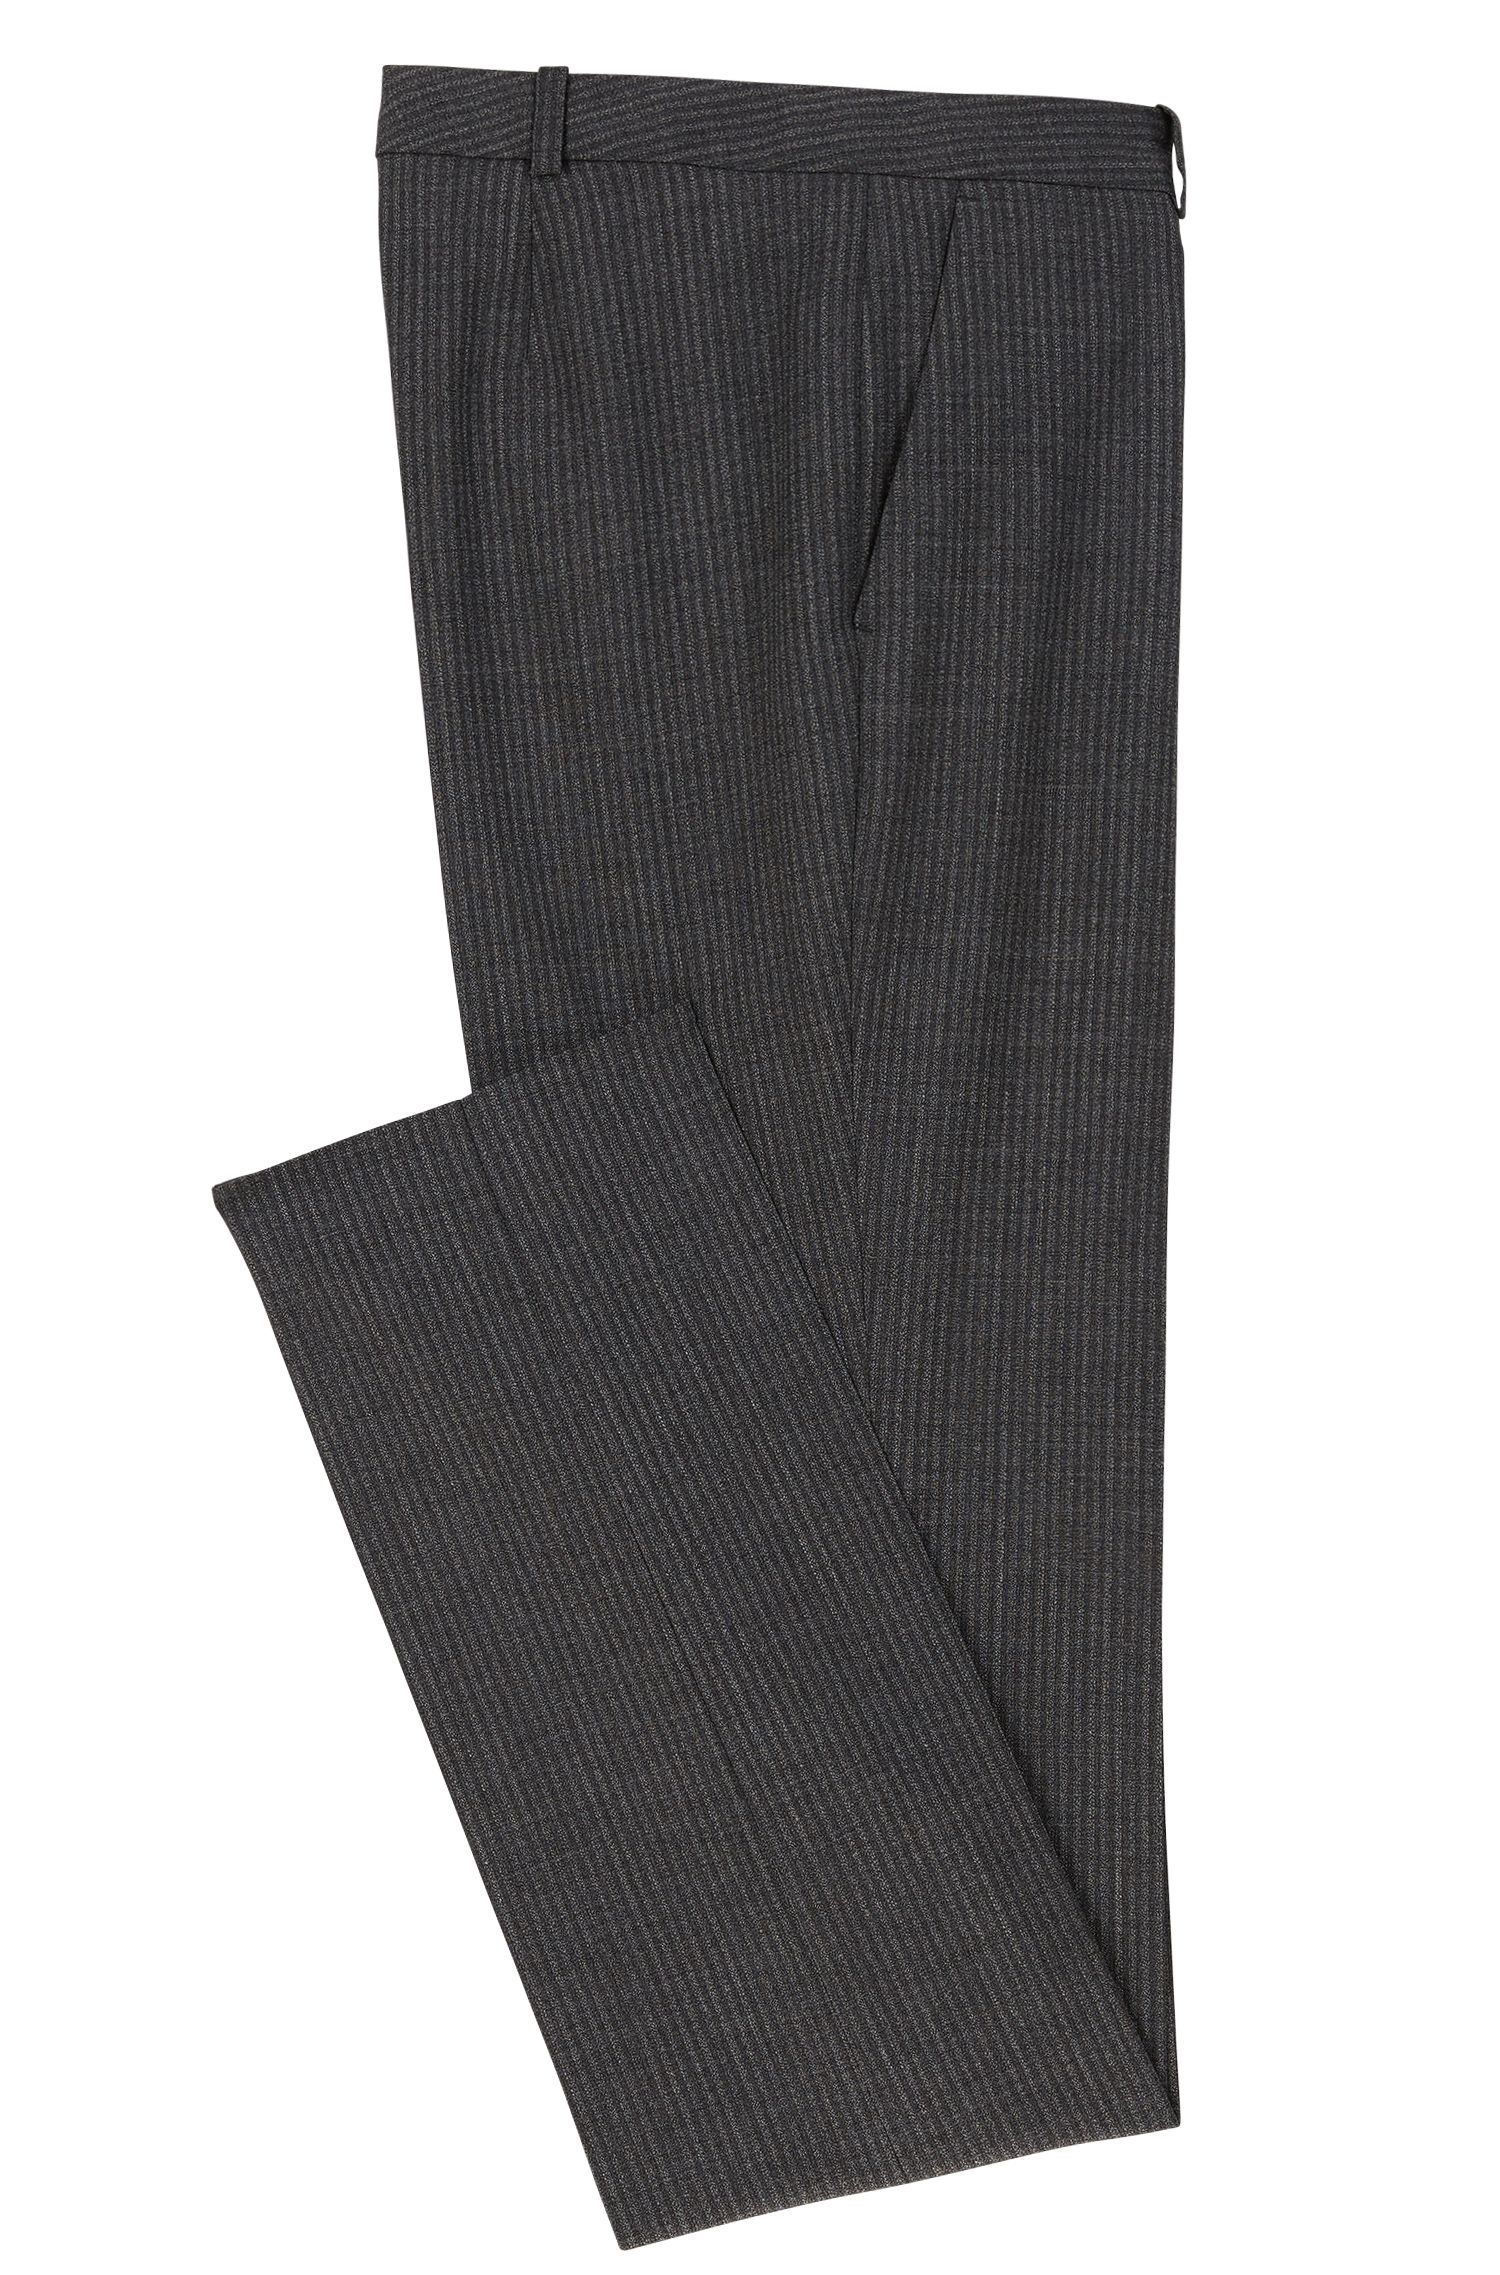 Pinstriped Stretch Virgin Wool Blend Pant | Titana, Patterned